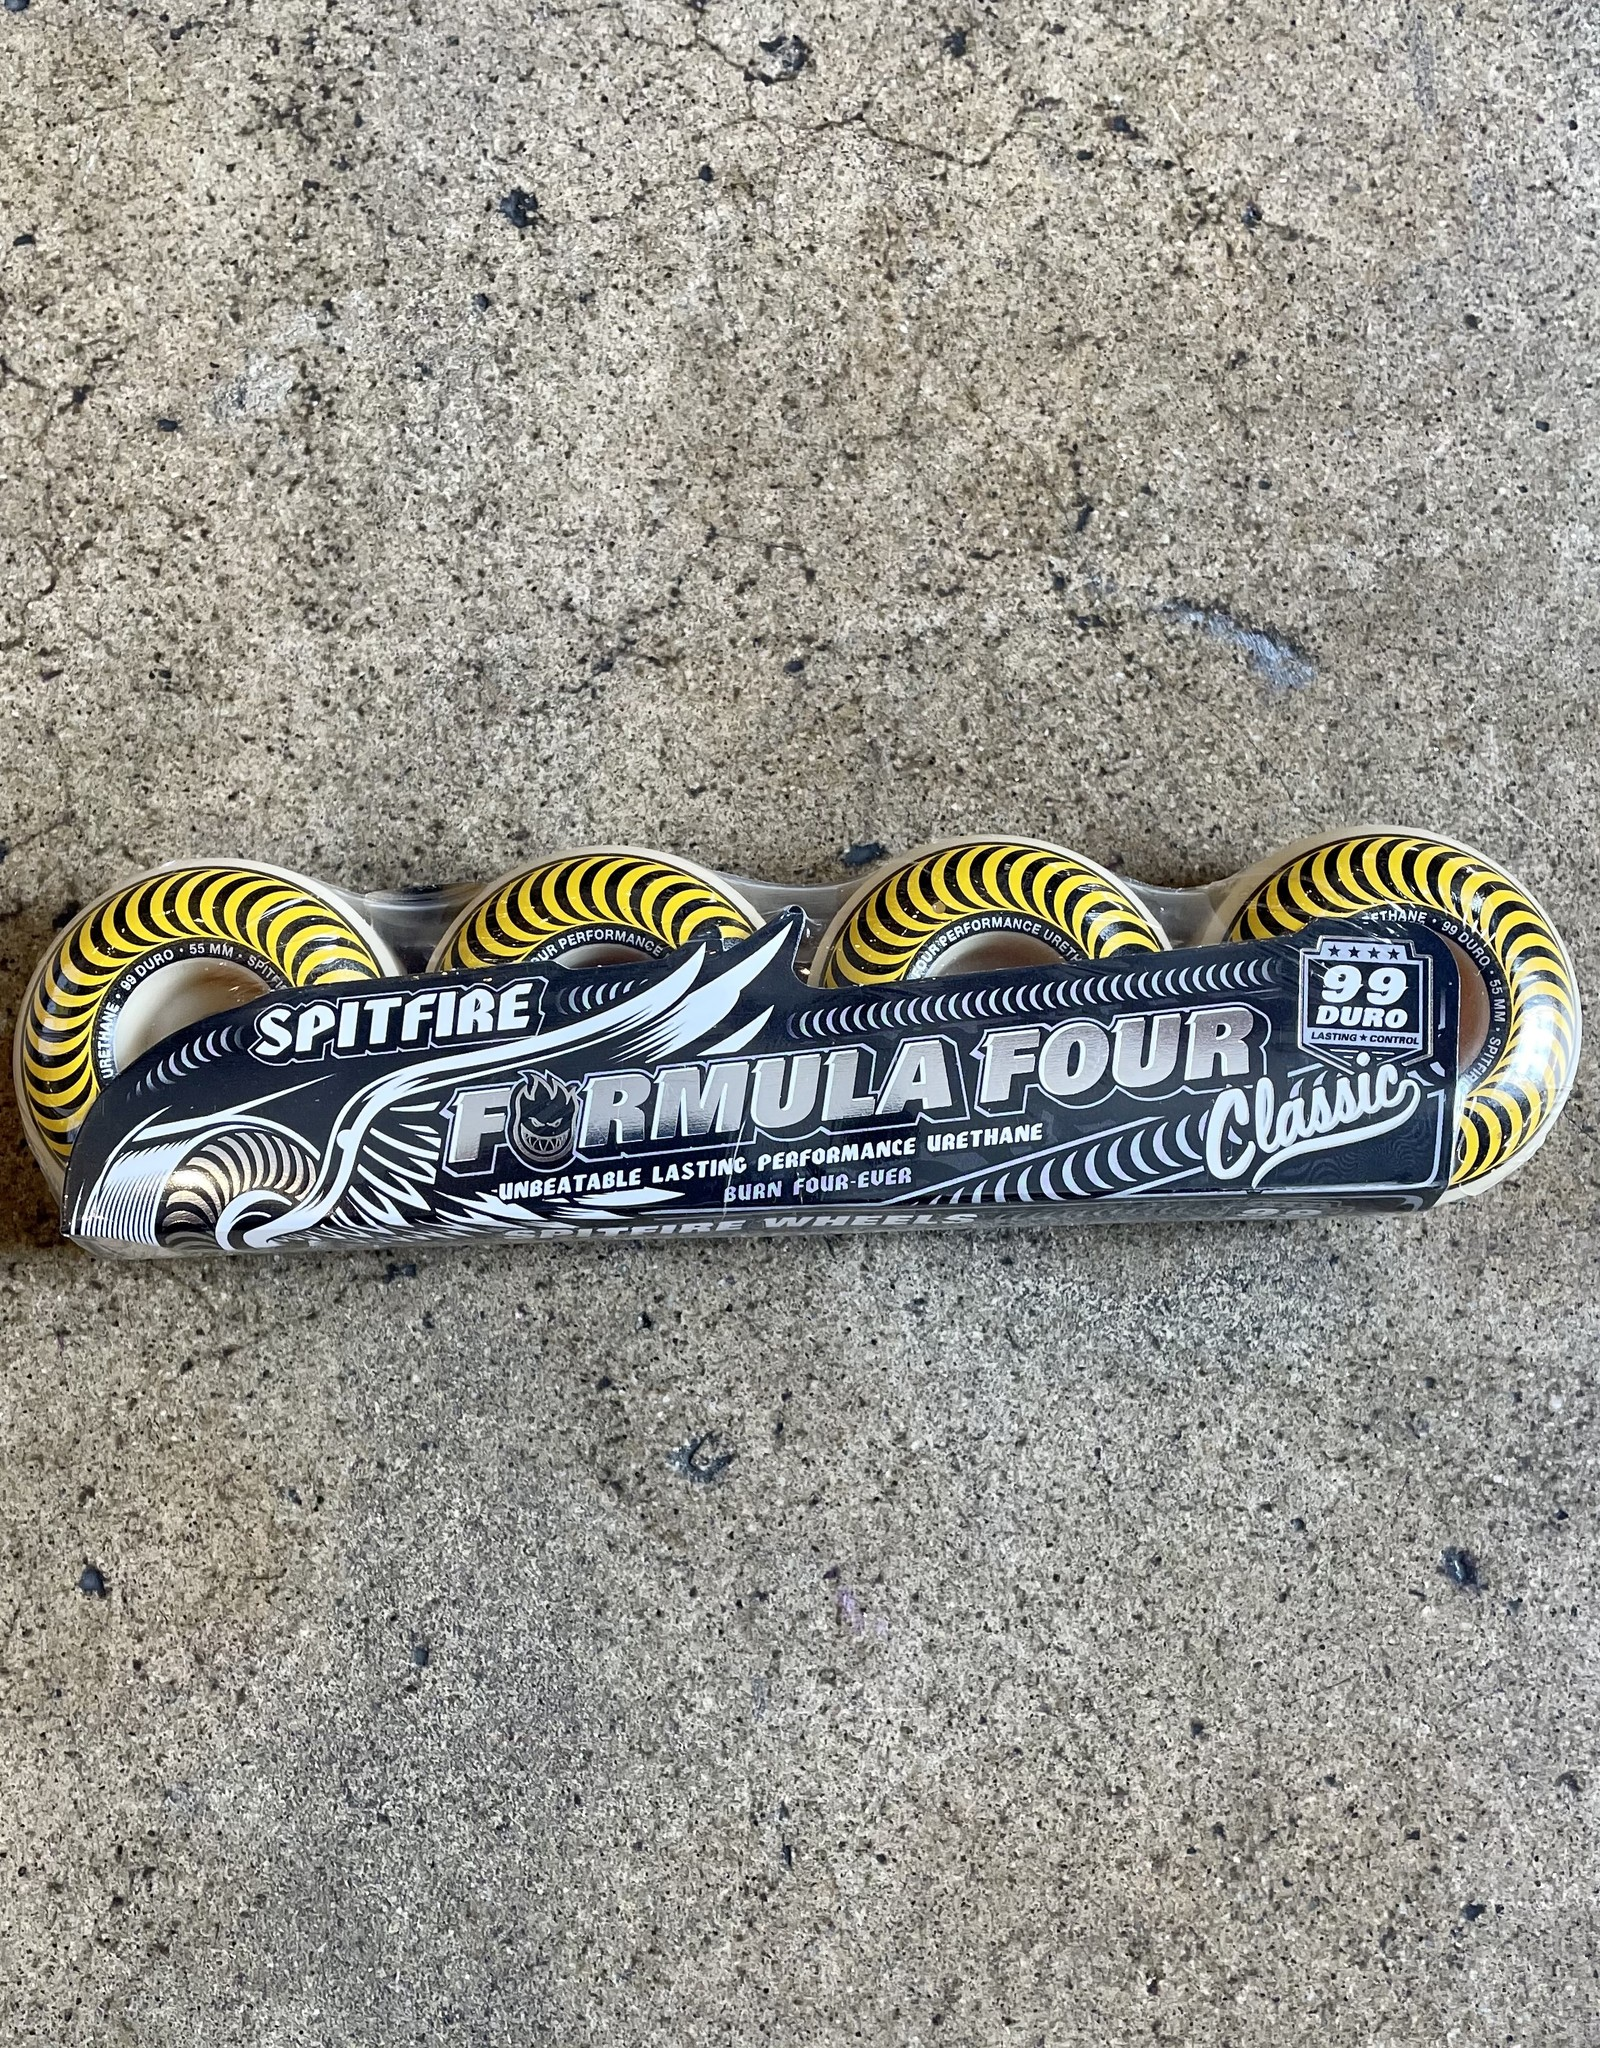 SPITFIRE F4 99 CLASSIC (YELLOW) - 55MM